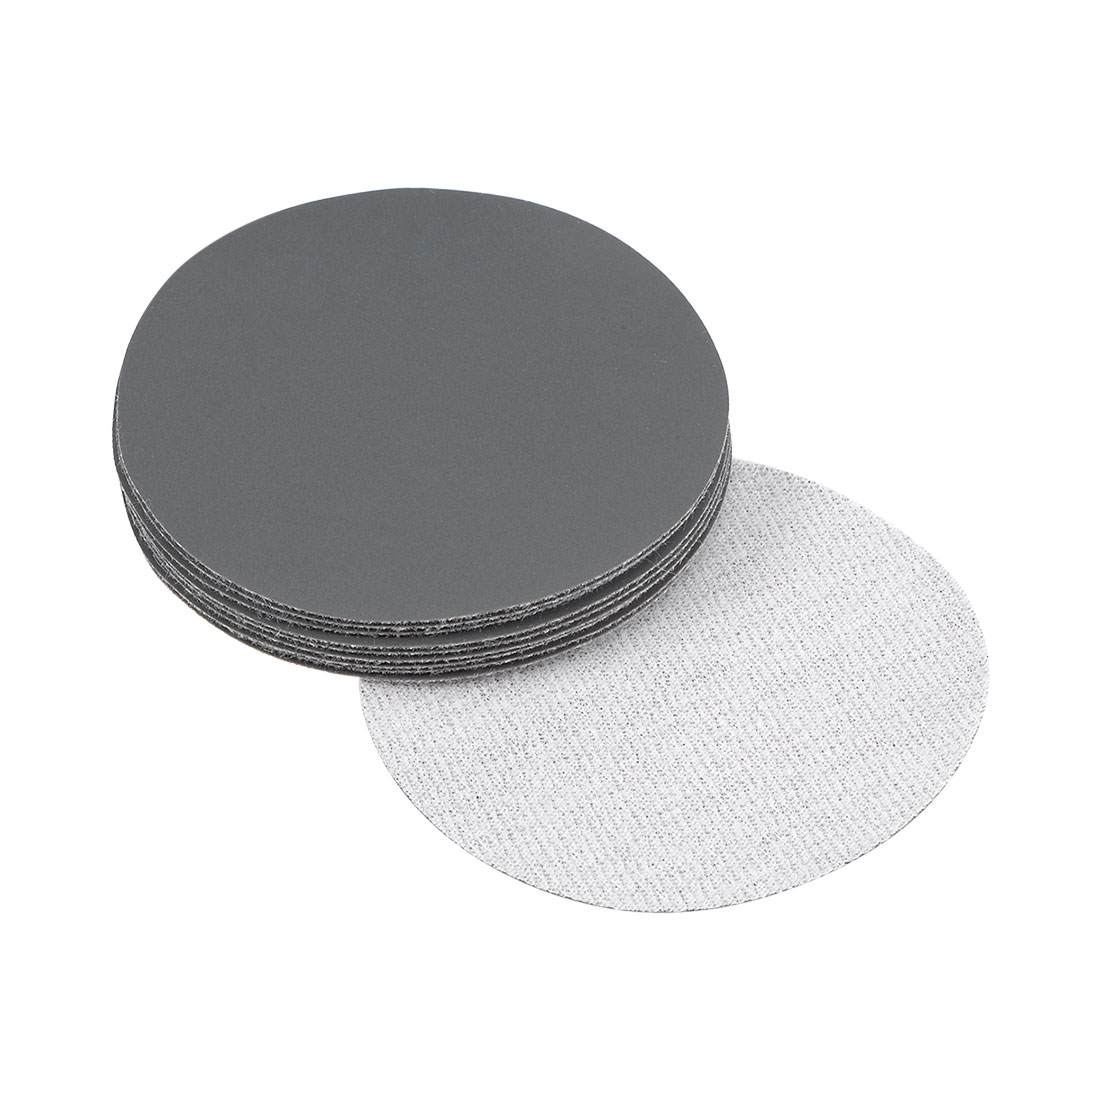 3 inch Wet Dry Discs 1500 Grit Hook and Loop Sanding Disc Silicon Carbide 10pcs